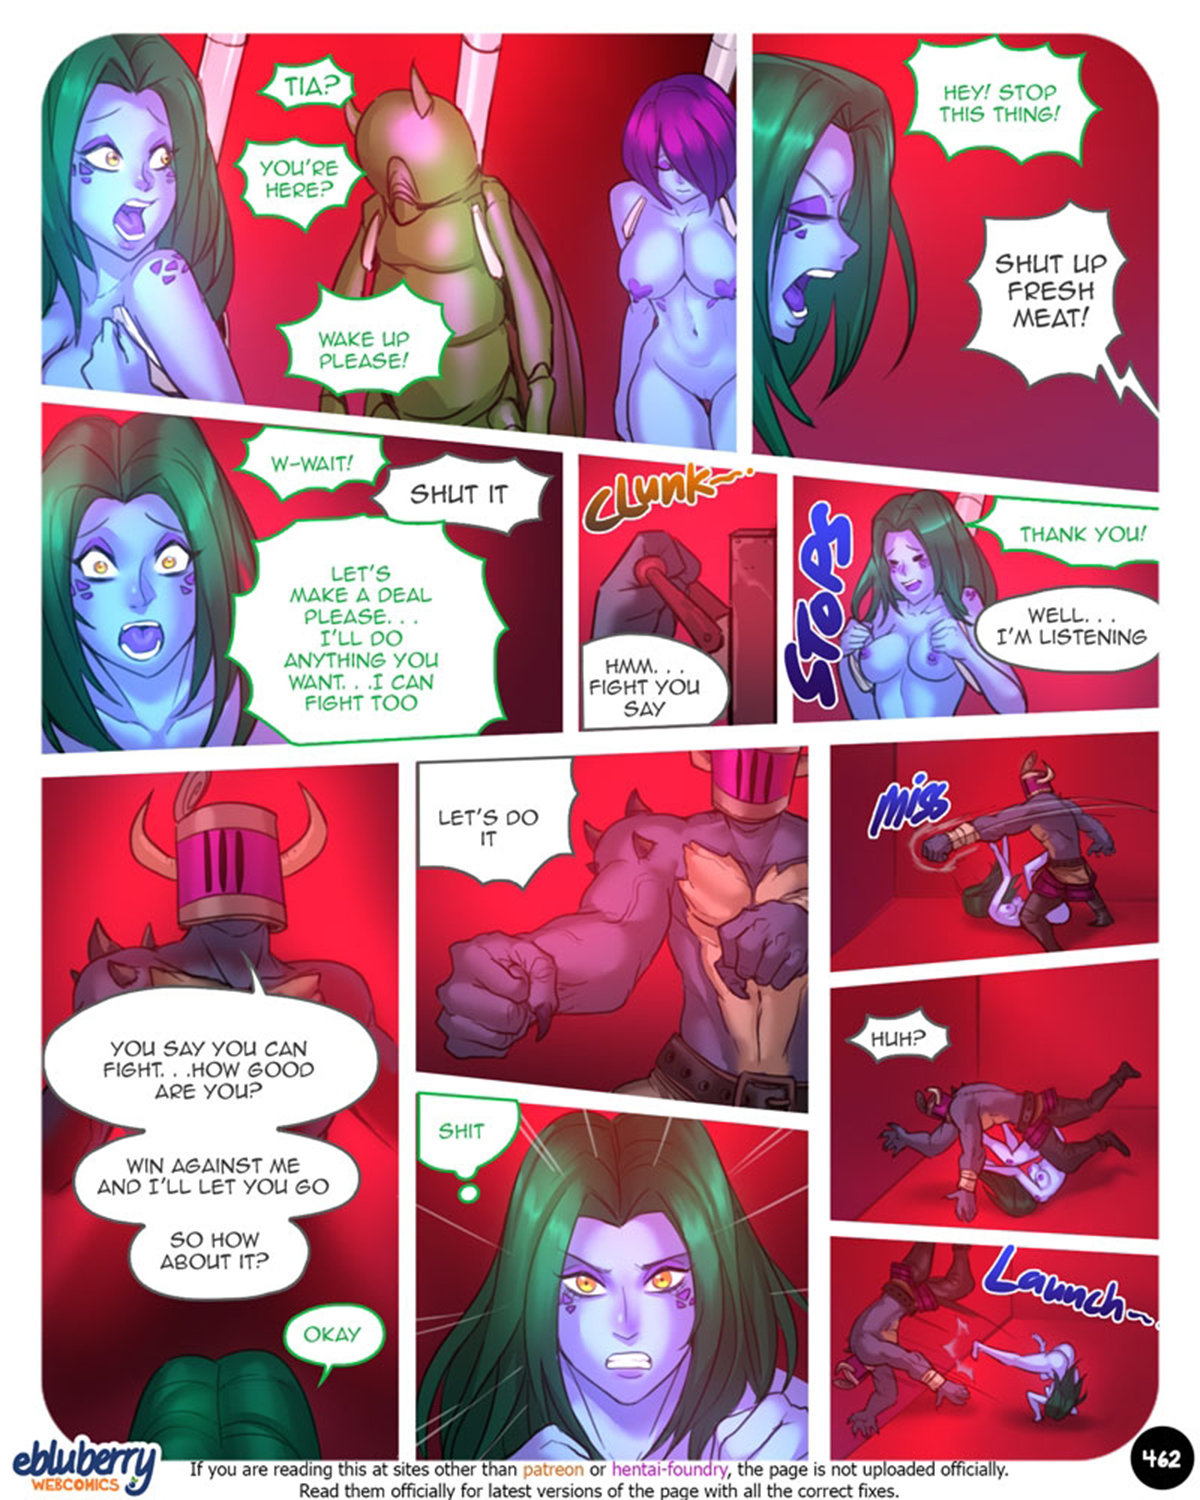 023 1 - S.EXpedition - [Ebluberry]. Part 22.